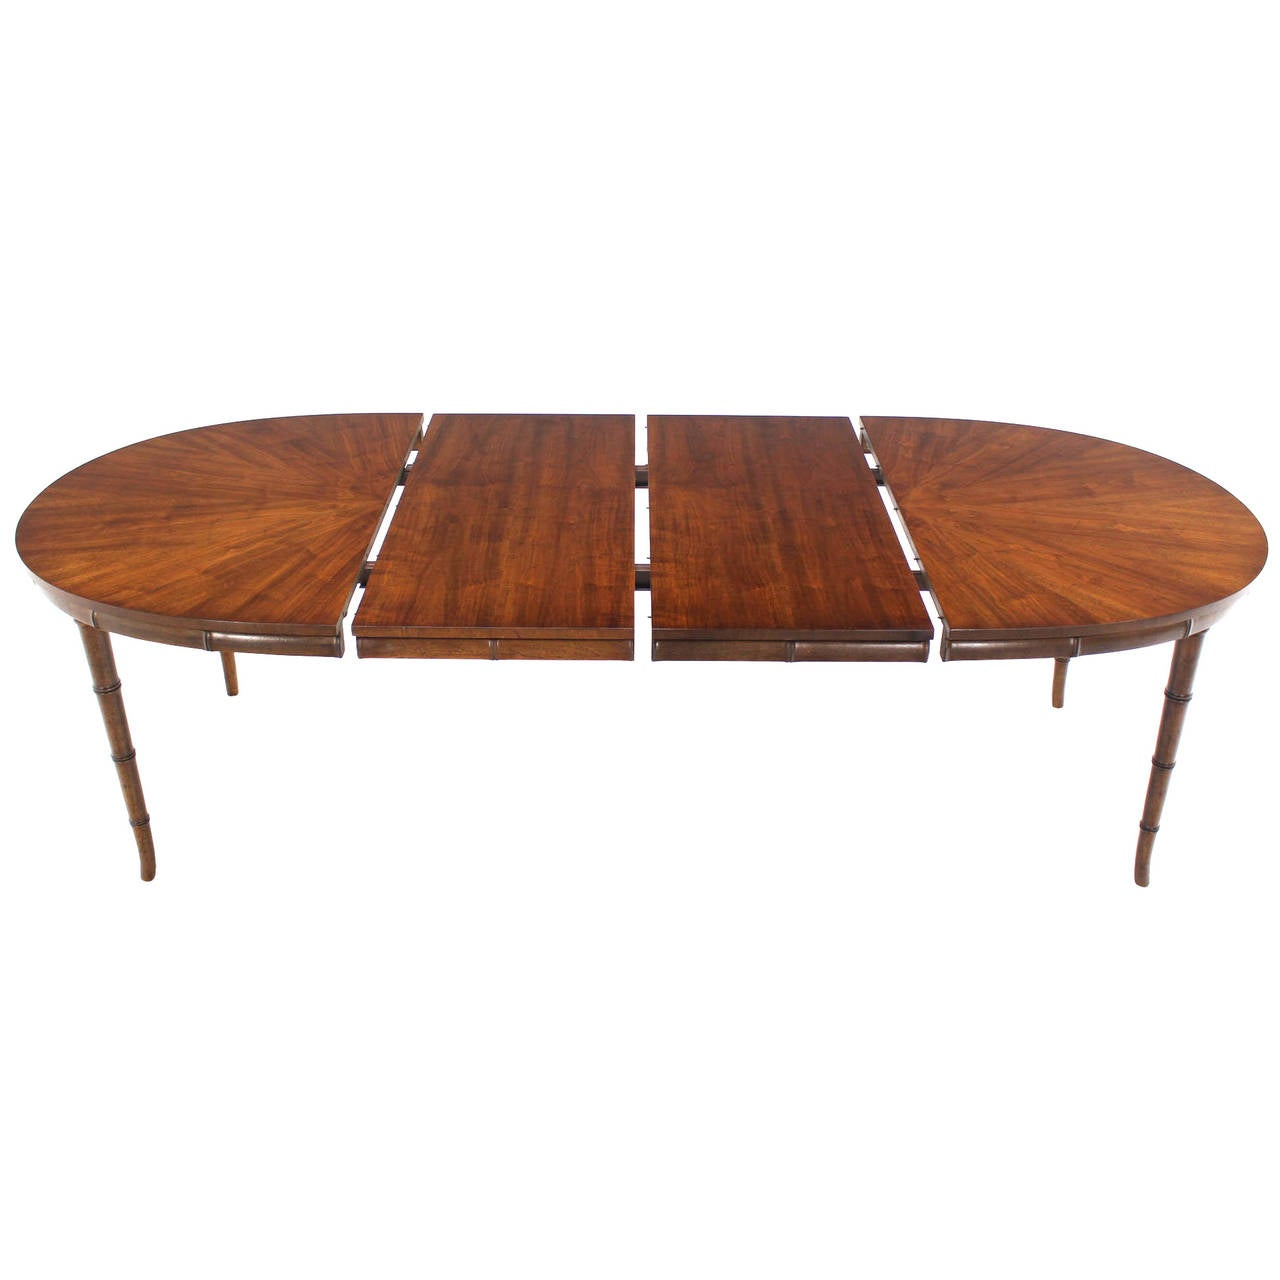 Faux bamboo horn shape leg mid century modern oval table for Dining table with two leaves